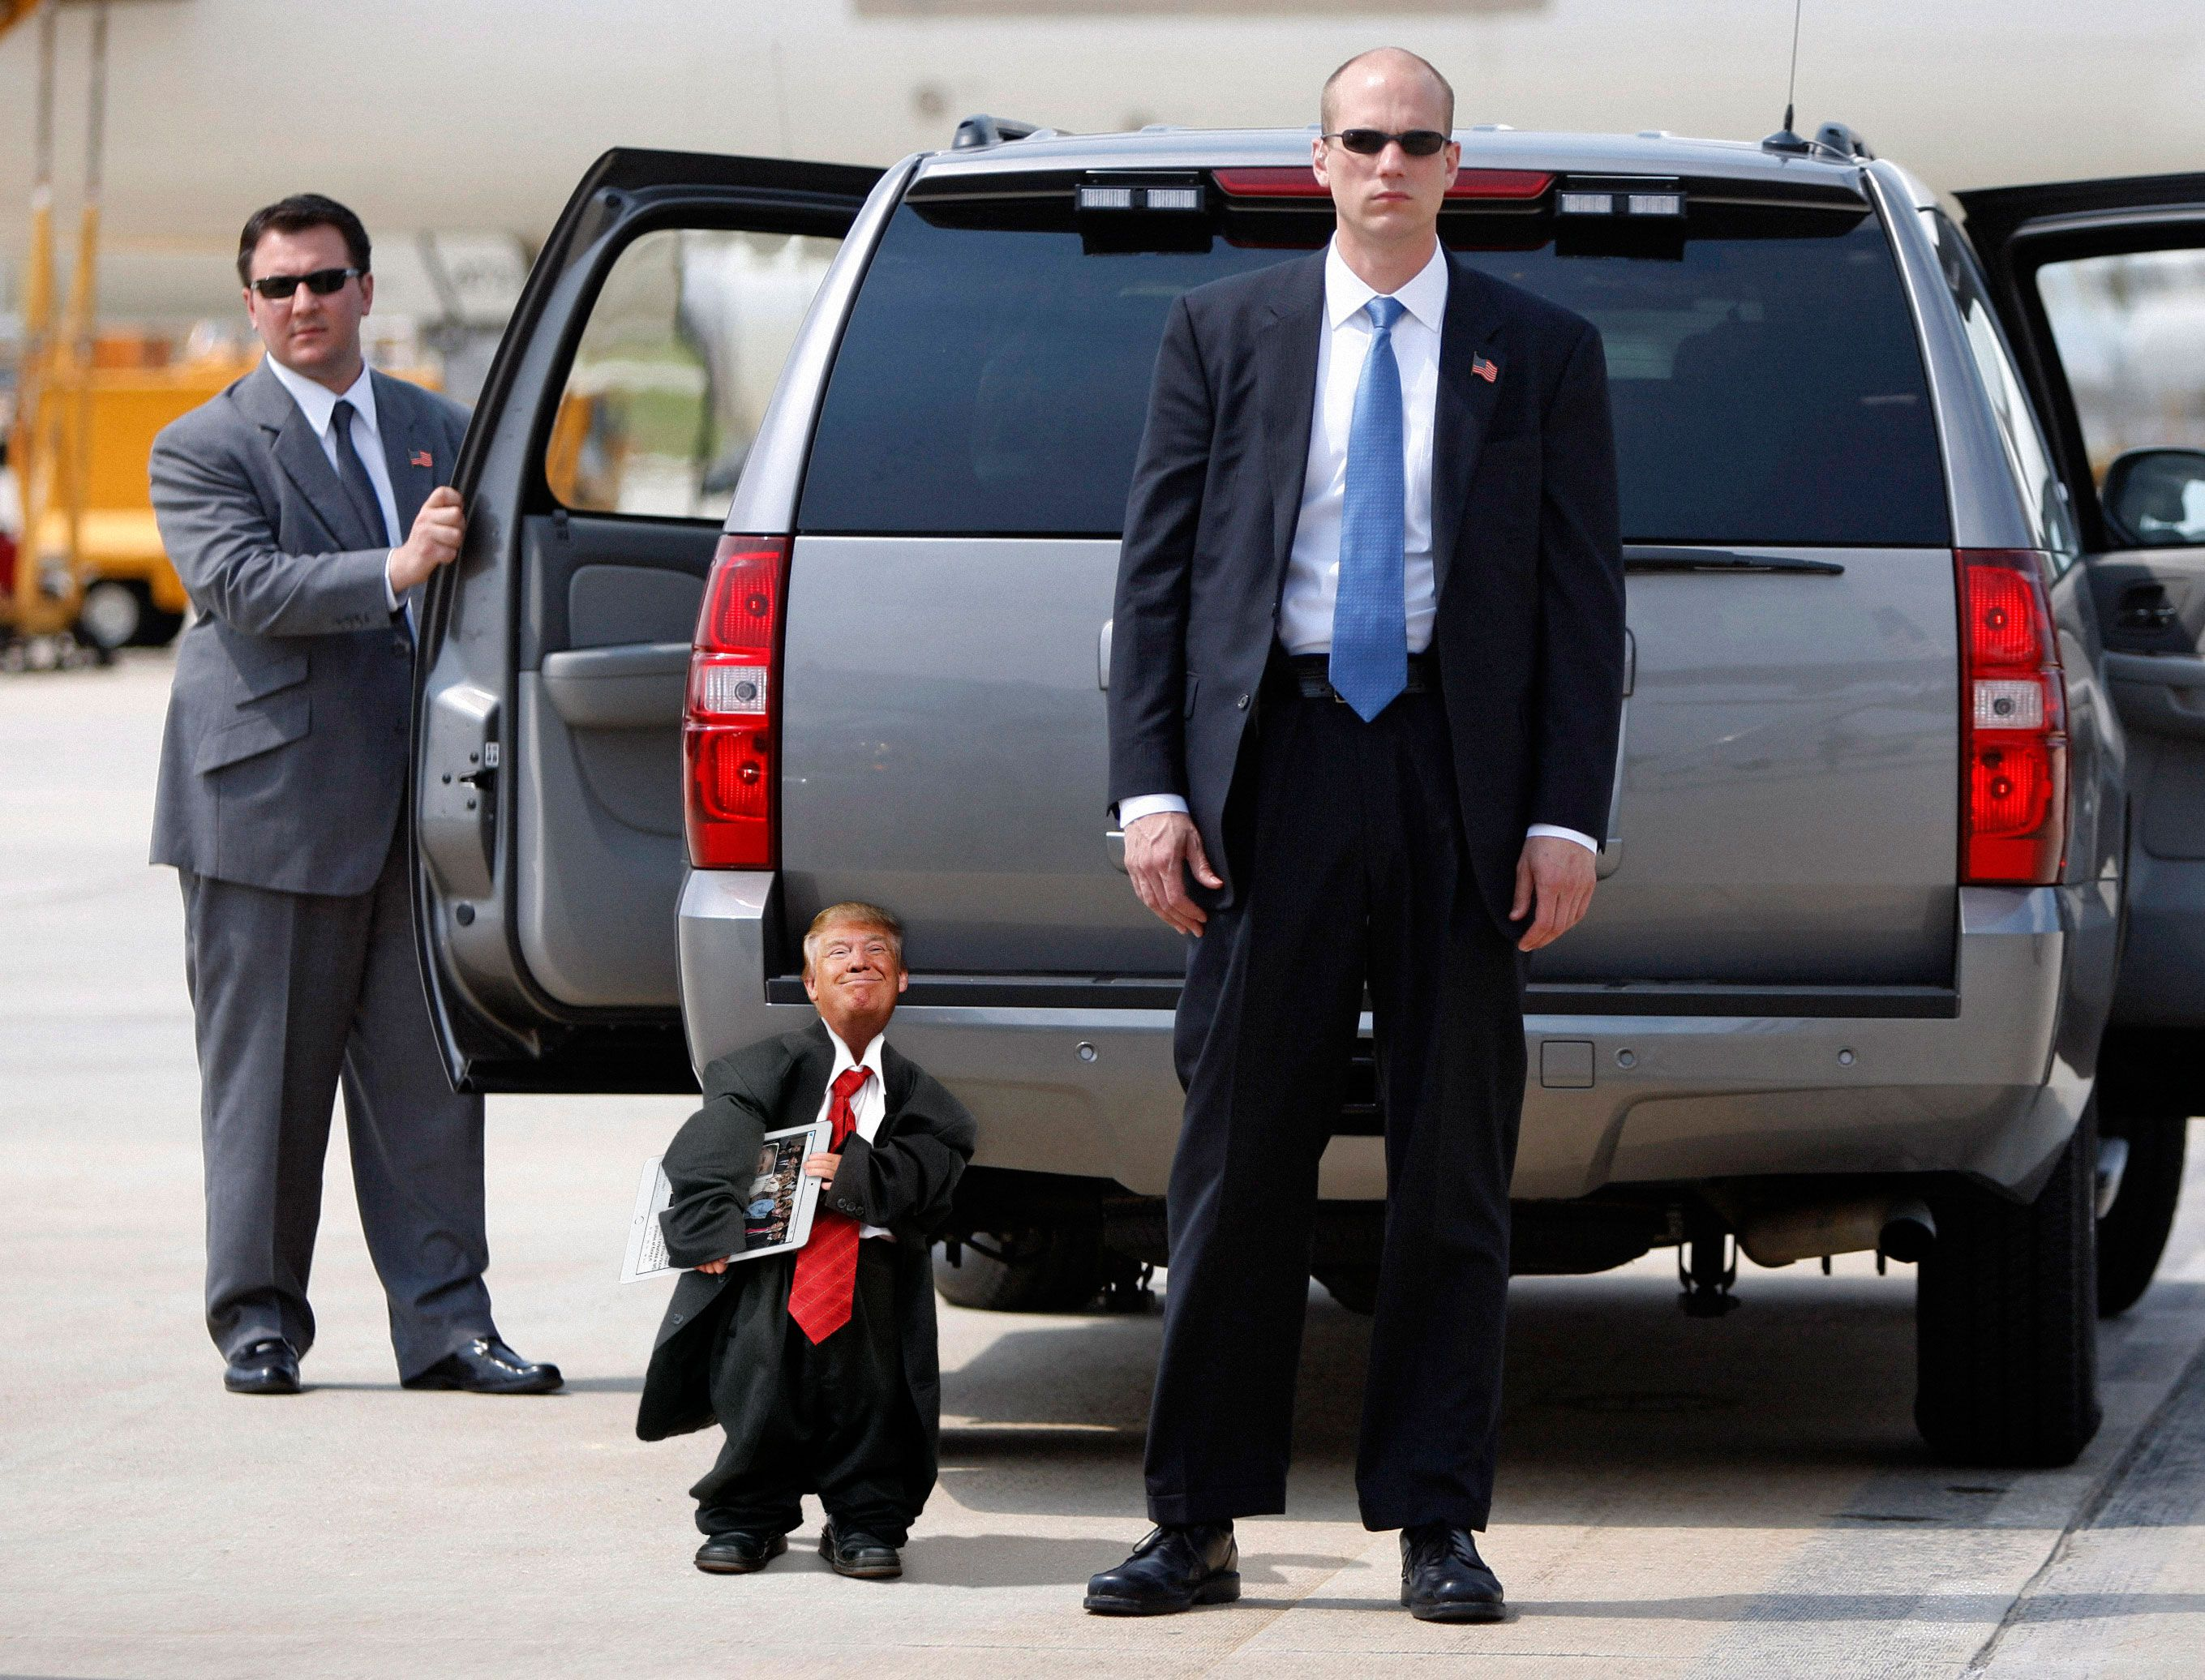 Tiny Trump Pictures Thank You Reddit I Love You TracyAMalone - The internet is using photoshop to make tiny trumps and its hilarious